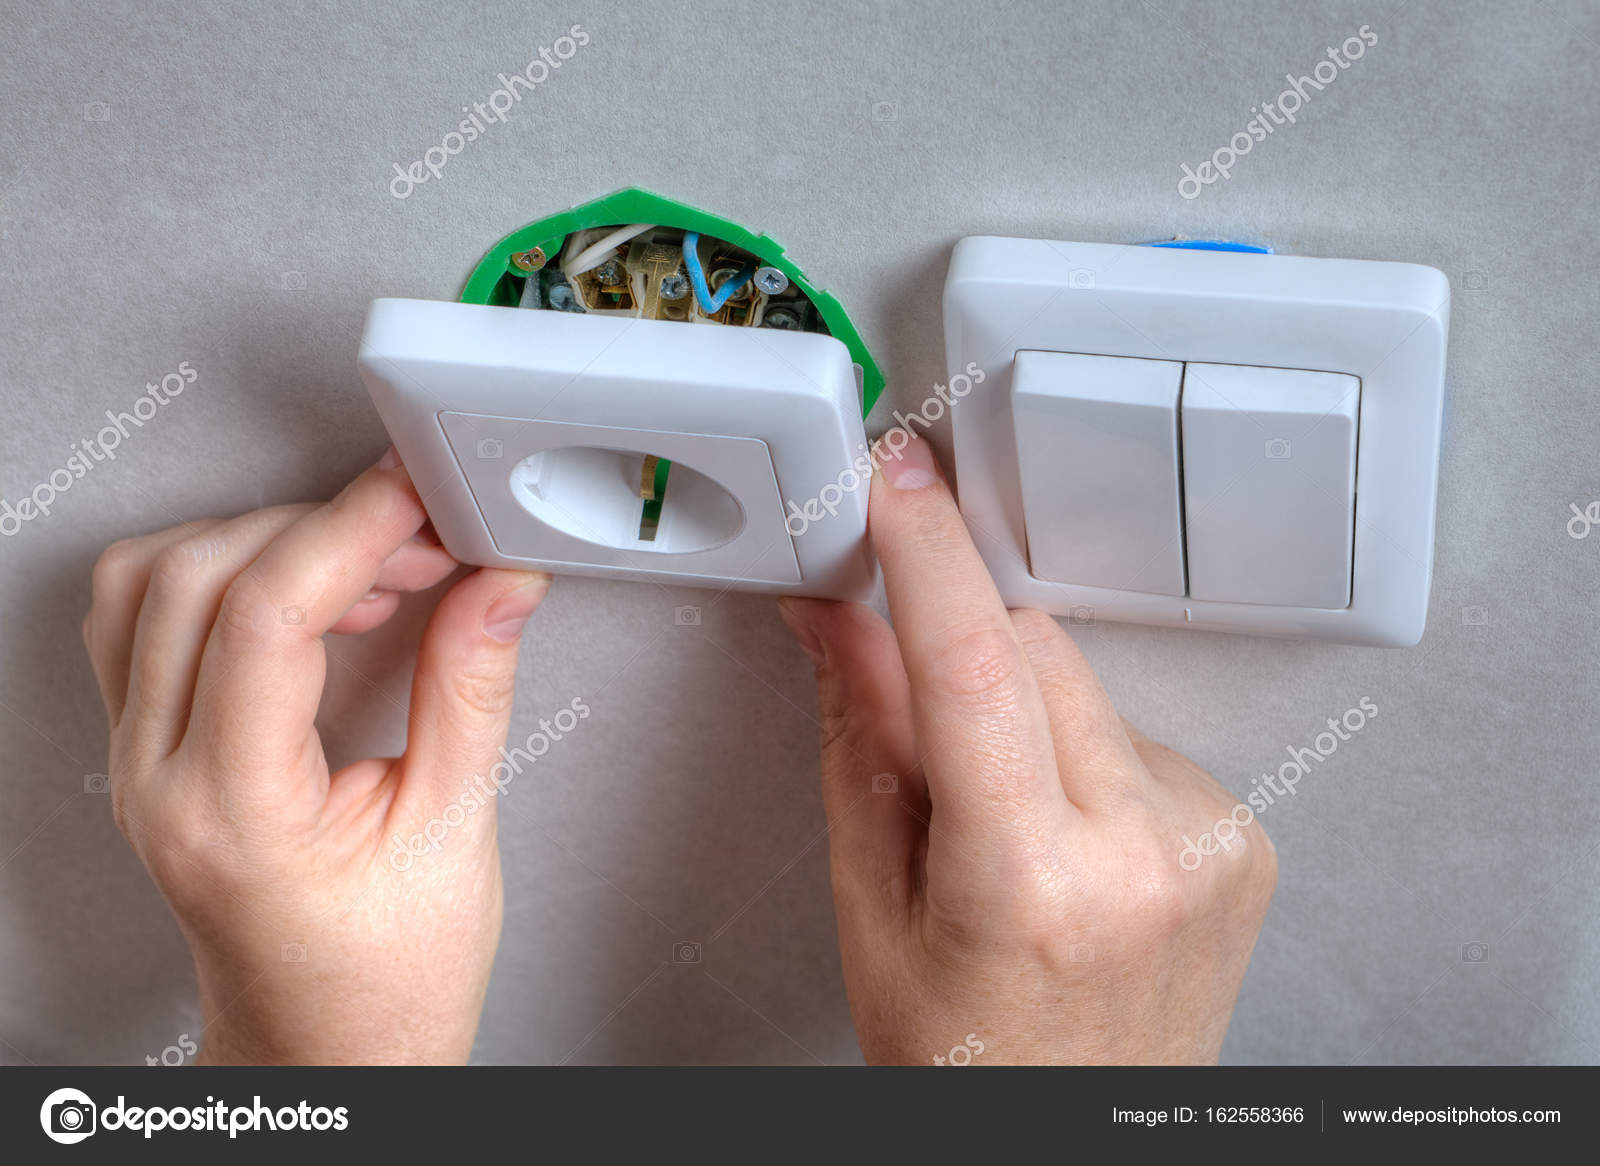 Outstanding Installing The Wall Outlet Into A Wiring Box Close Up Hands Wiring Cloud Peadfoxcilixyz